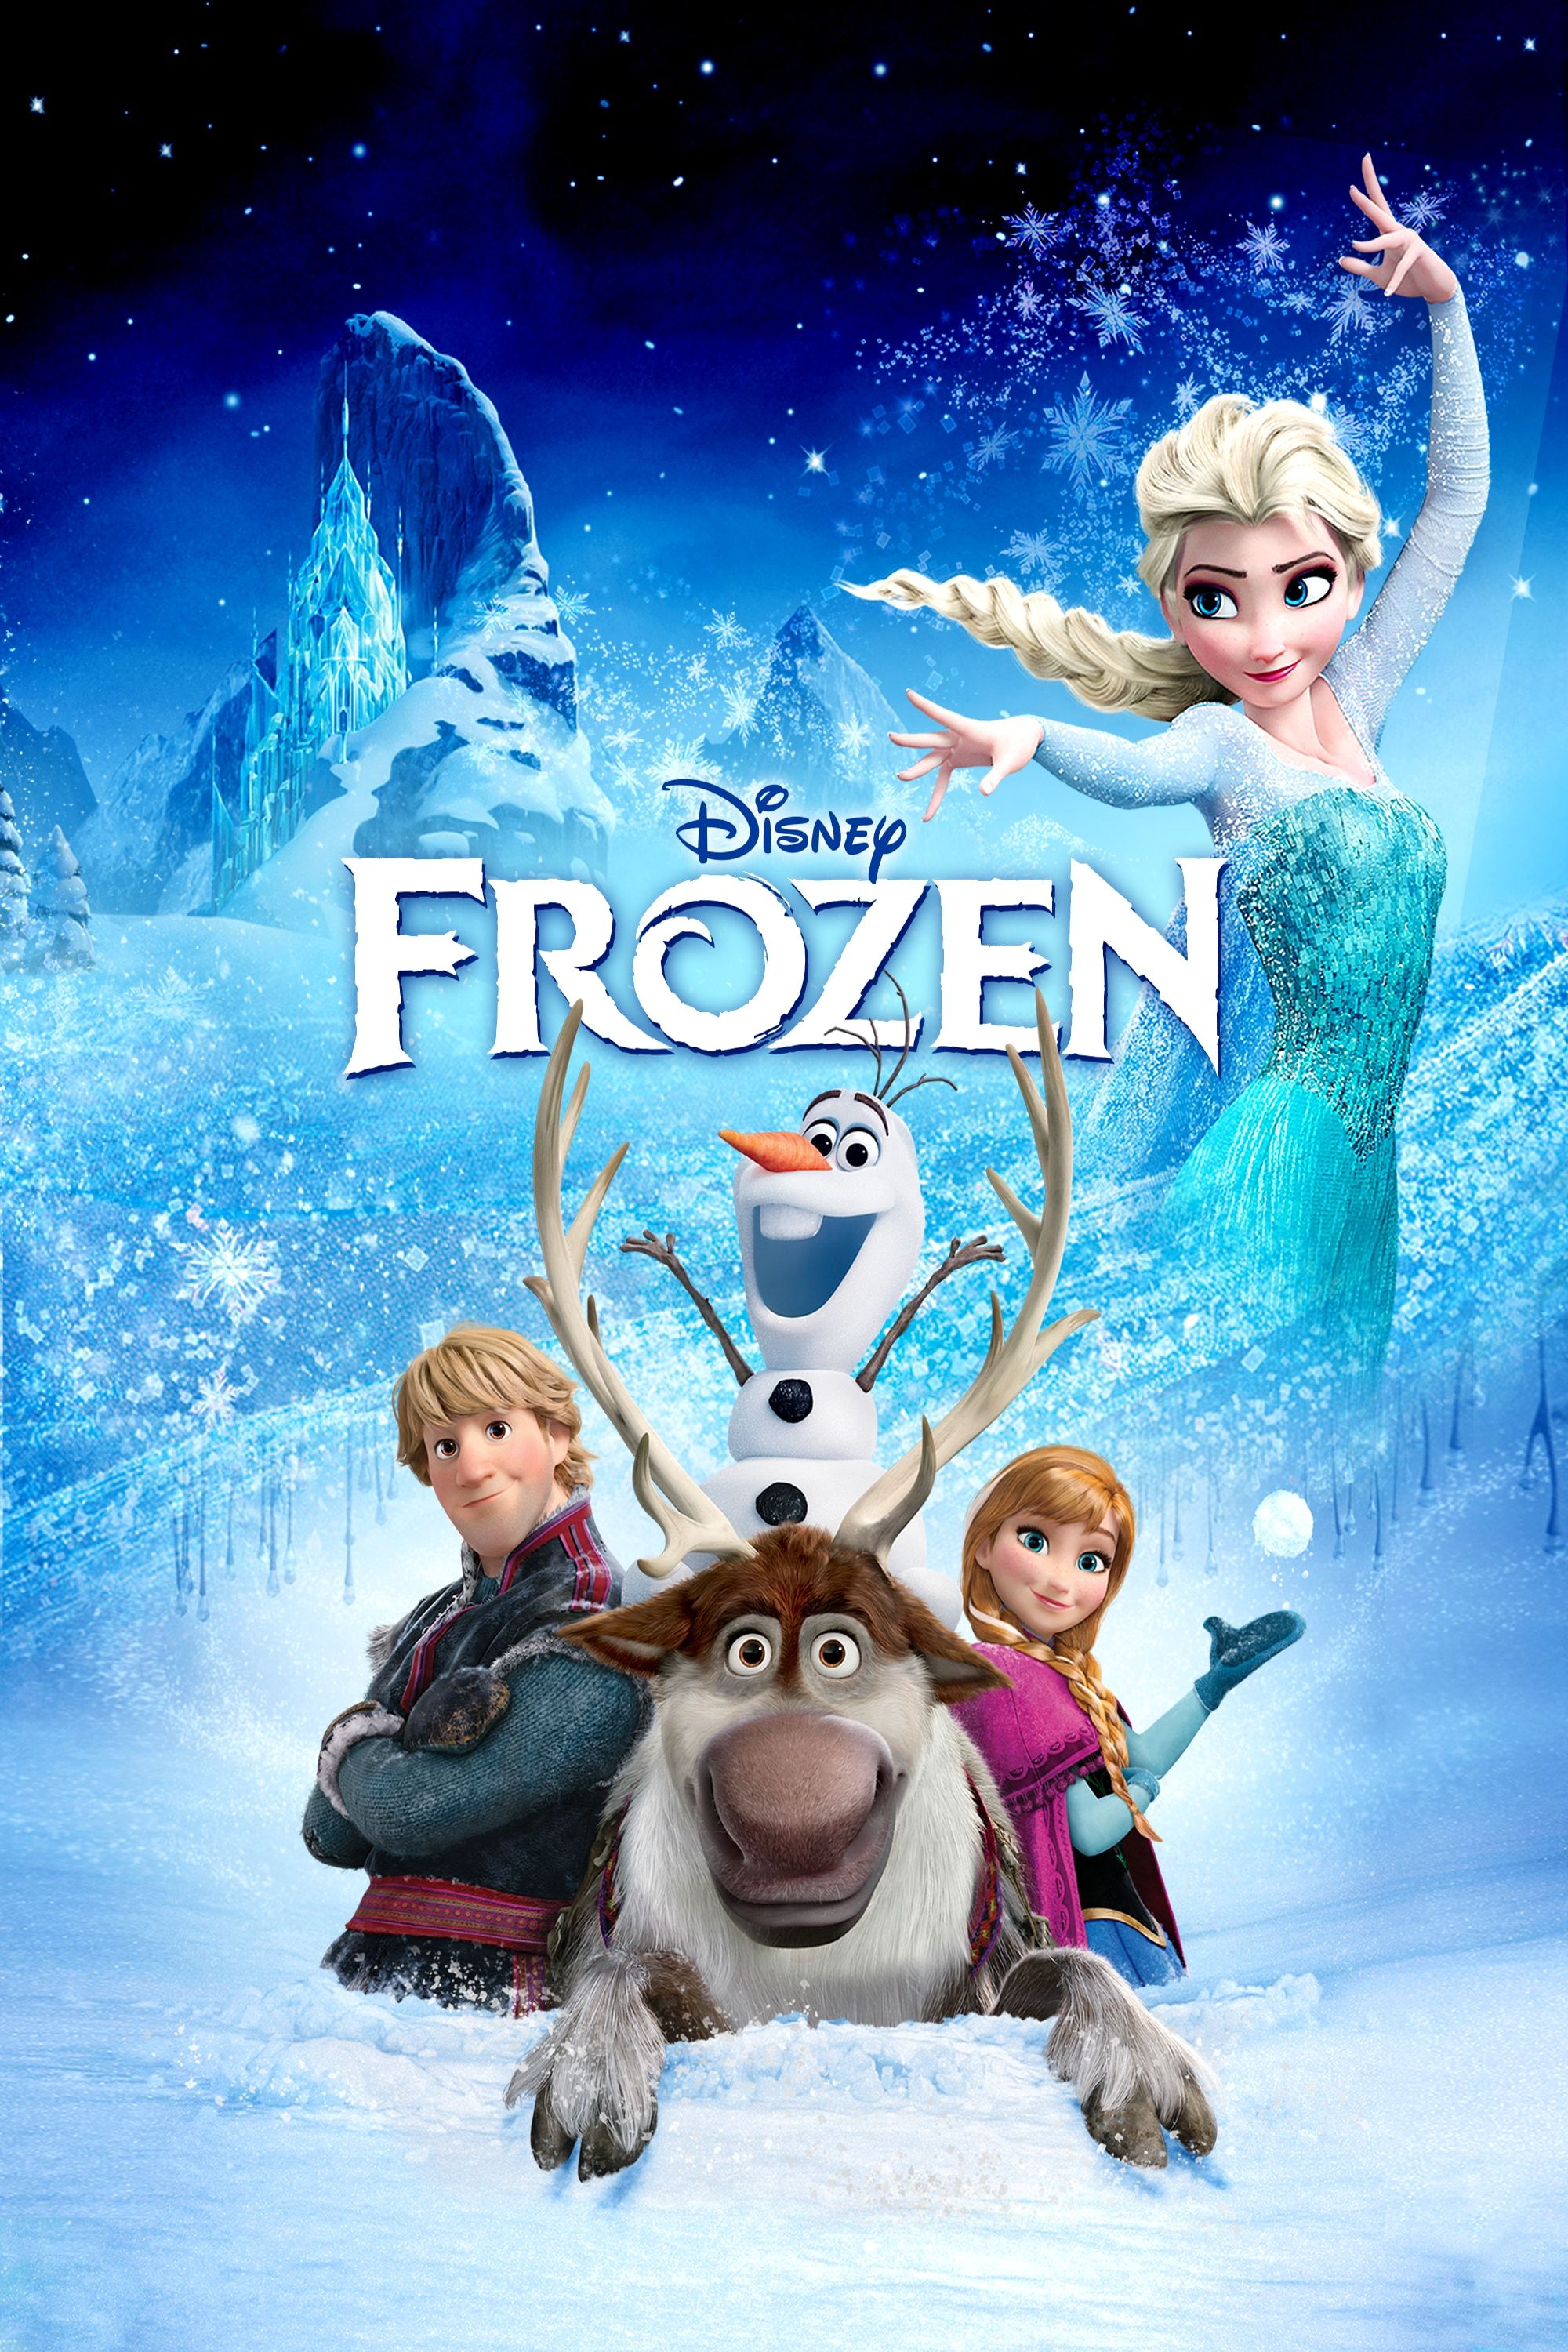 Frozen on Disney+